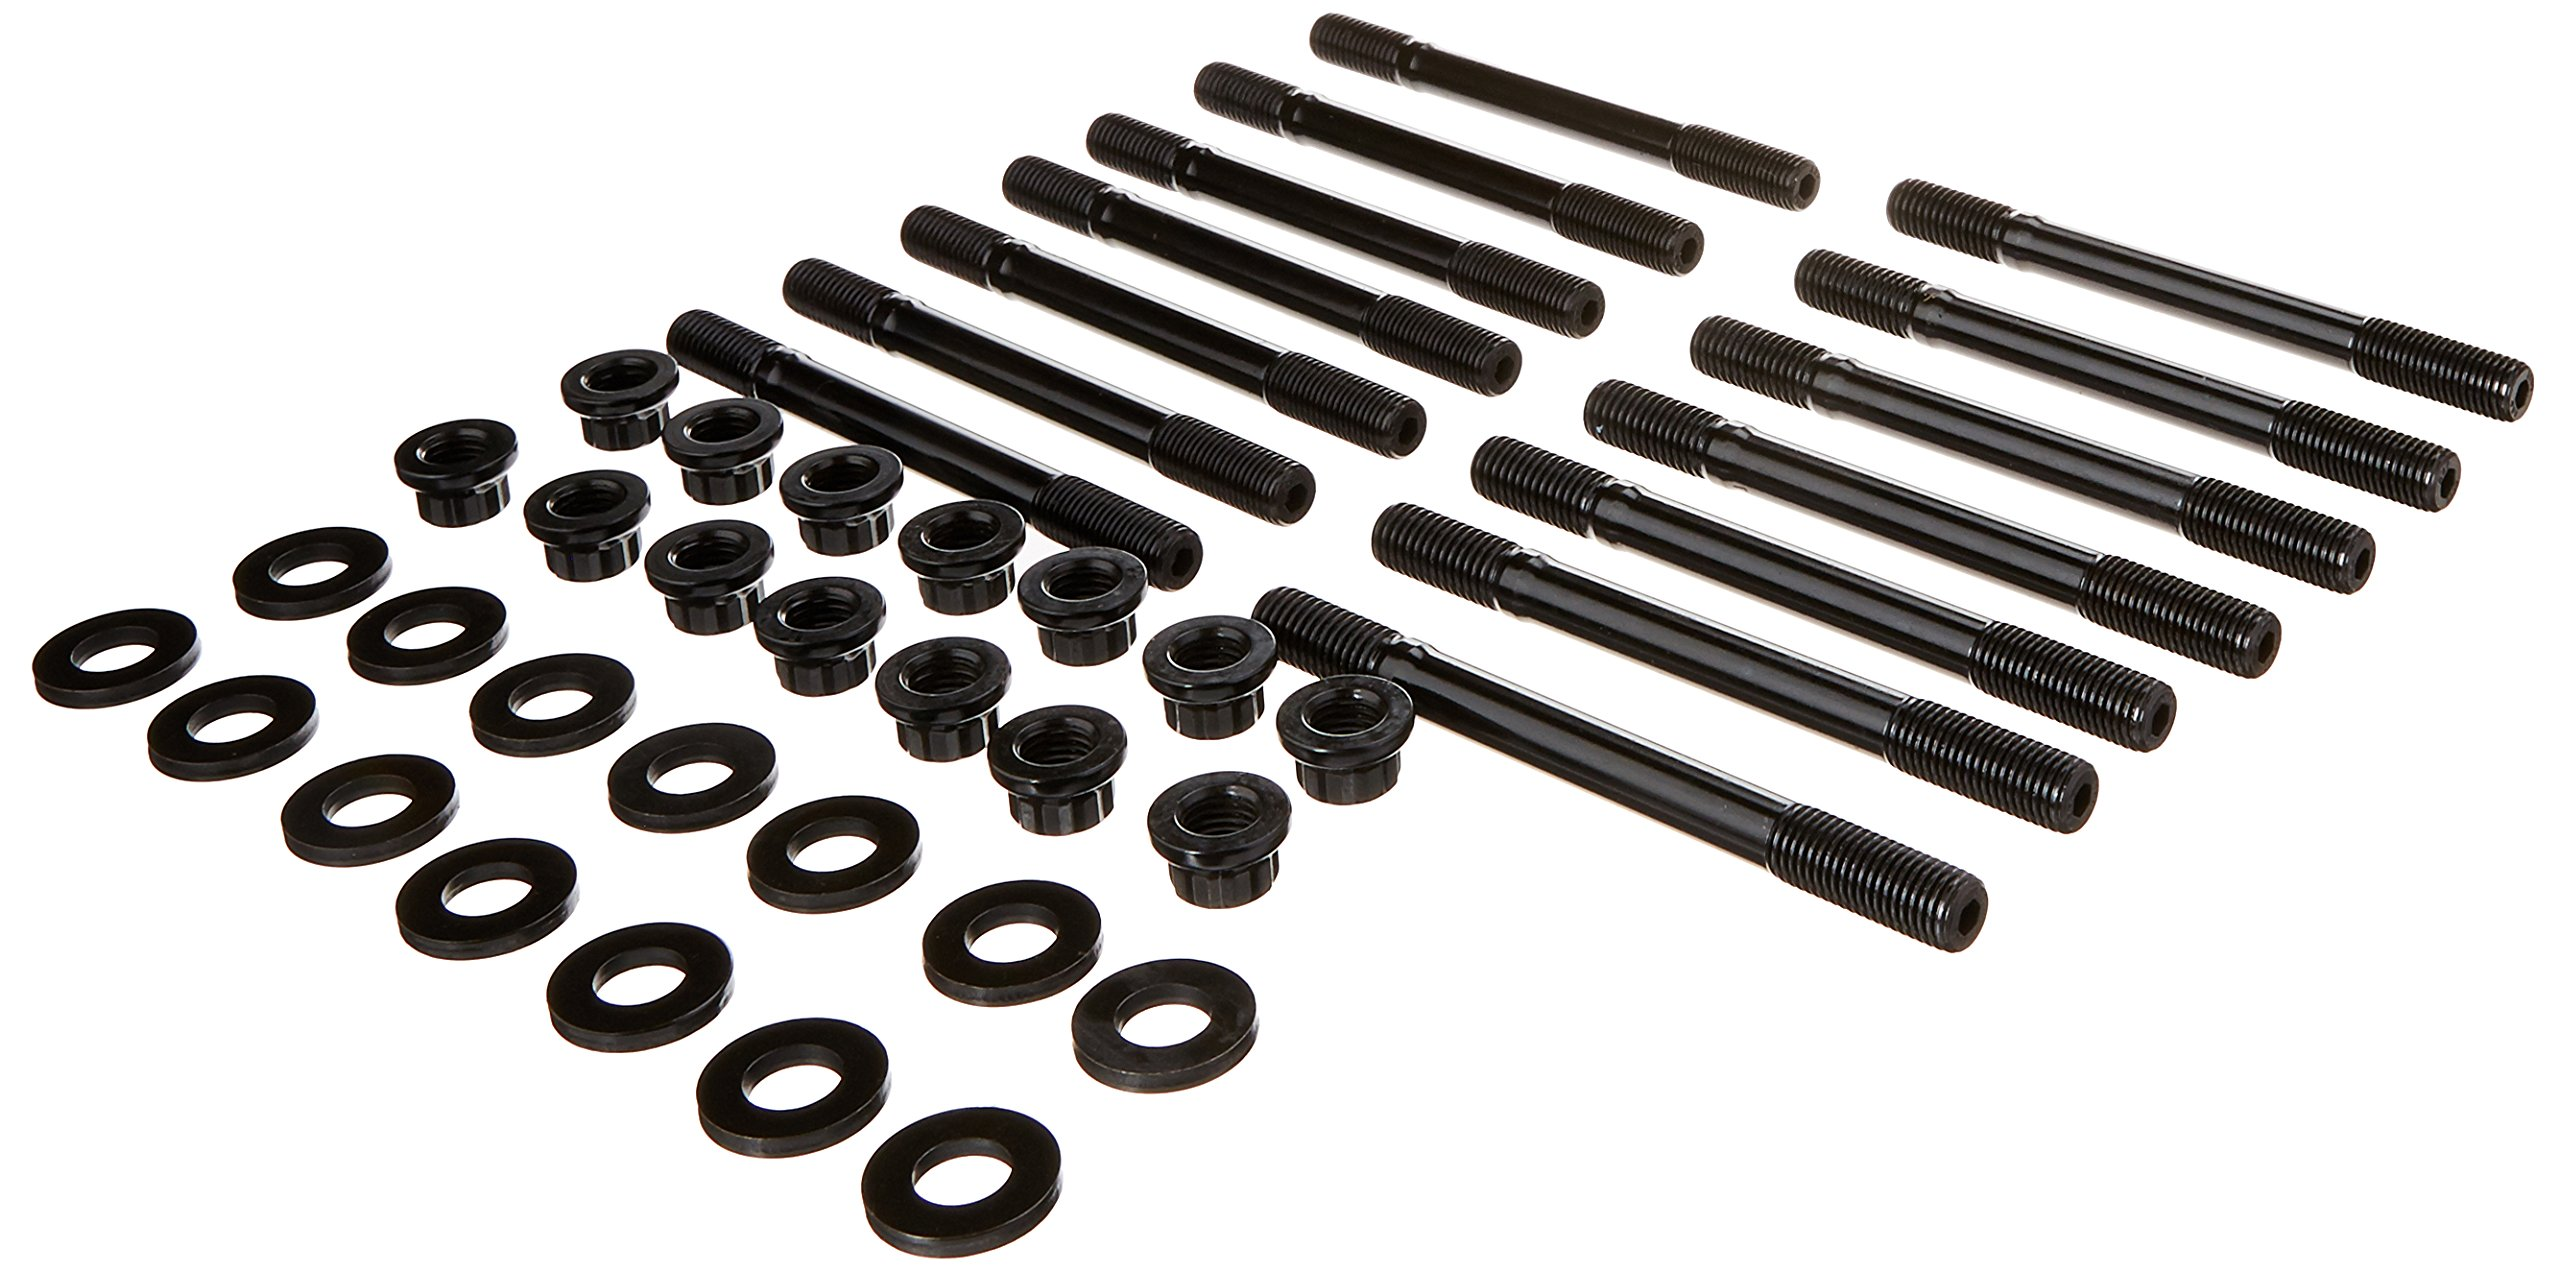 ARP 2014302 12-Point Head Stud Kit for BMW M50